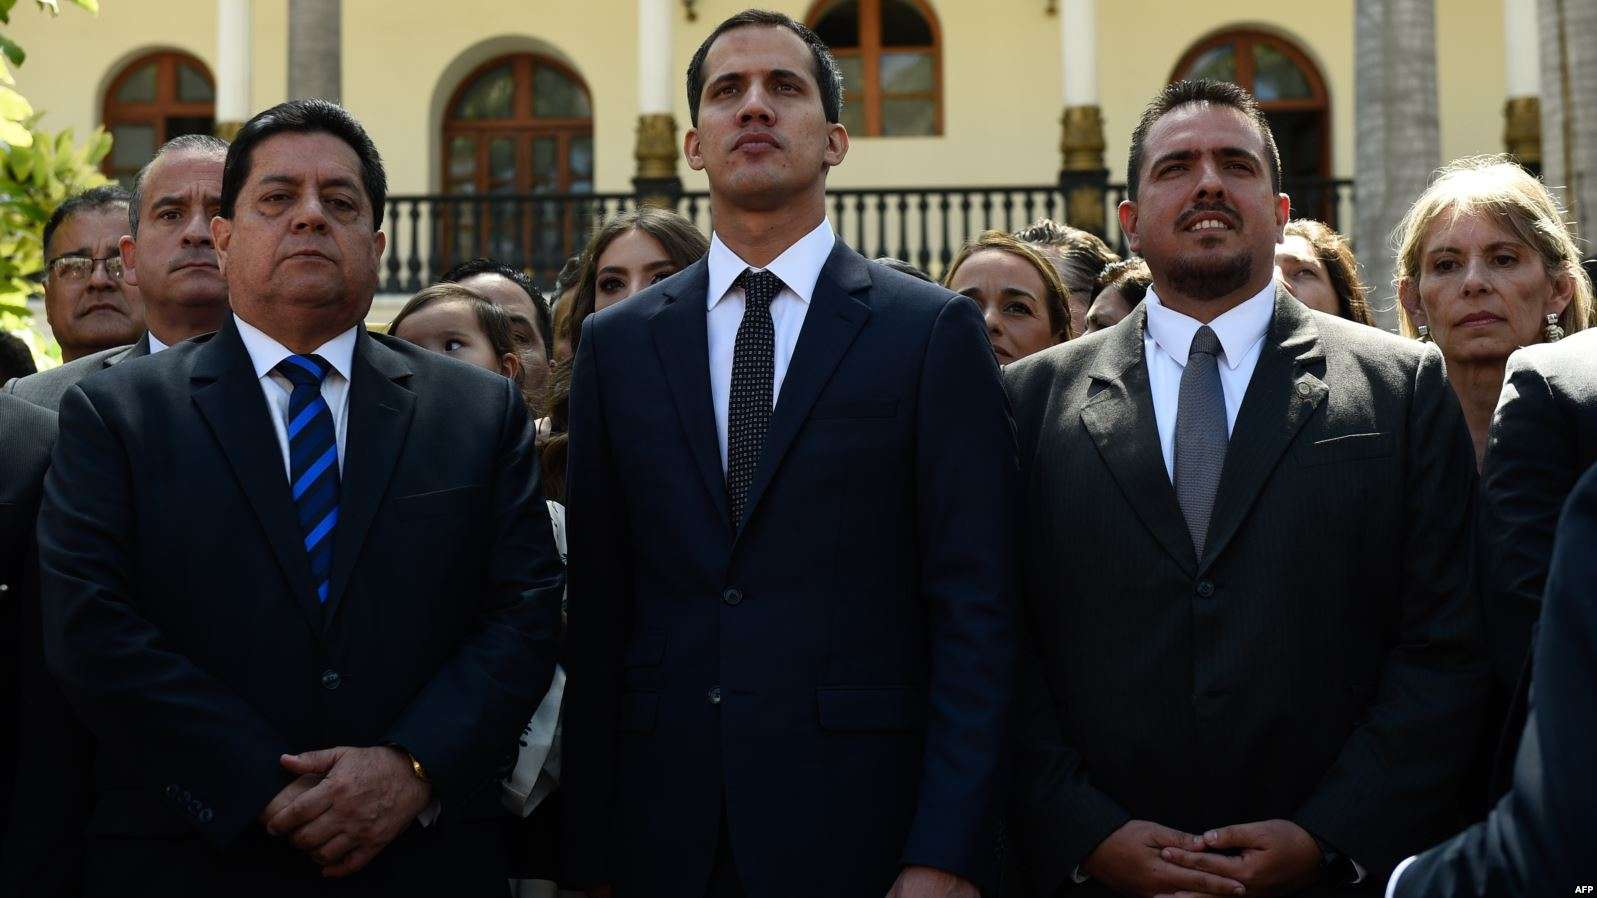 President of Venezuela's National Assembly and self-declared interim president of Venezuela, Juan Guaidó, stands in the center with members of the Assembly after their inauguration ceremony on January 5 in Caracas. (Wikimedia Commons)